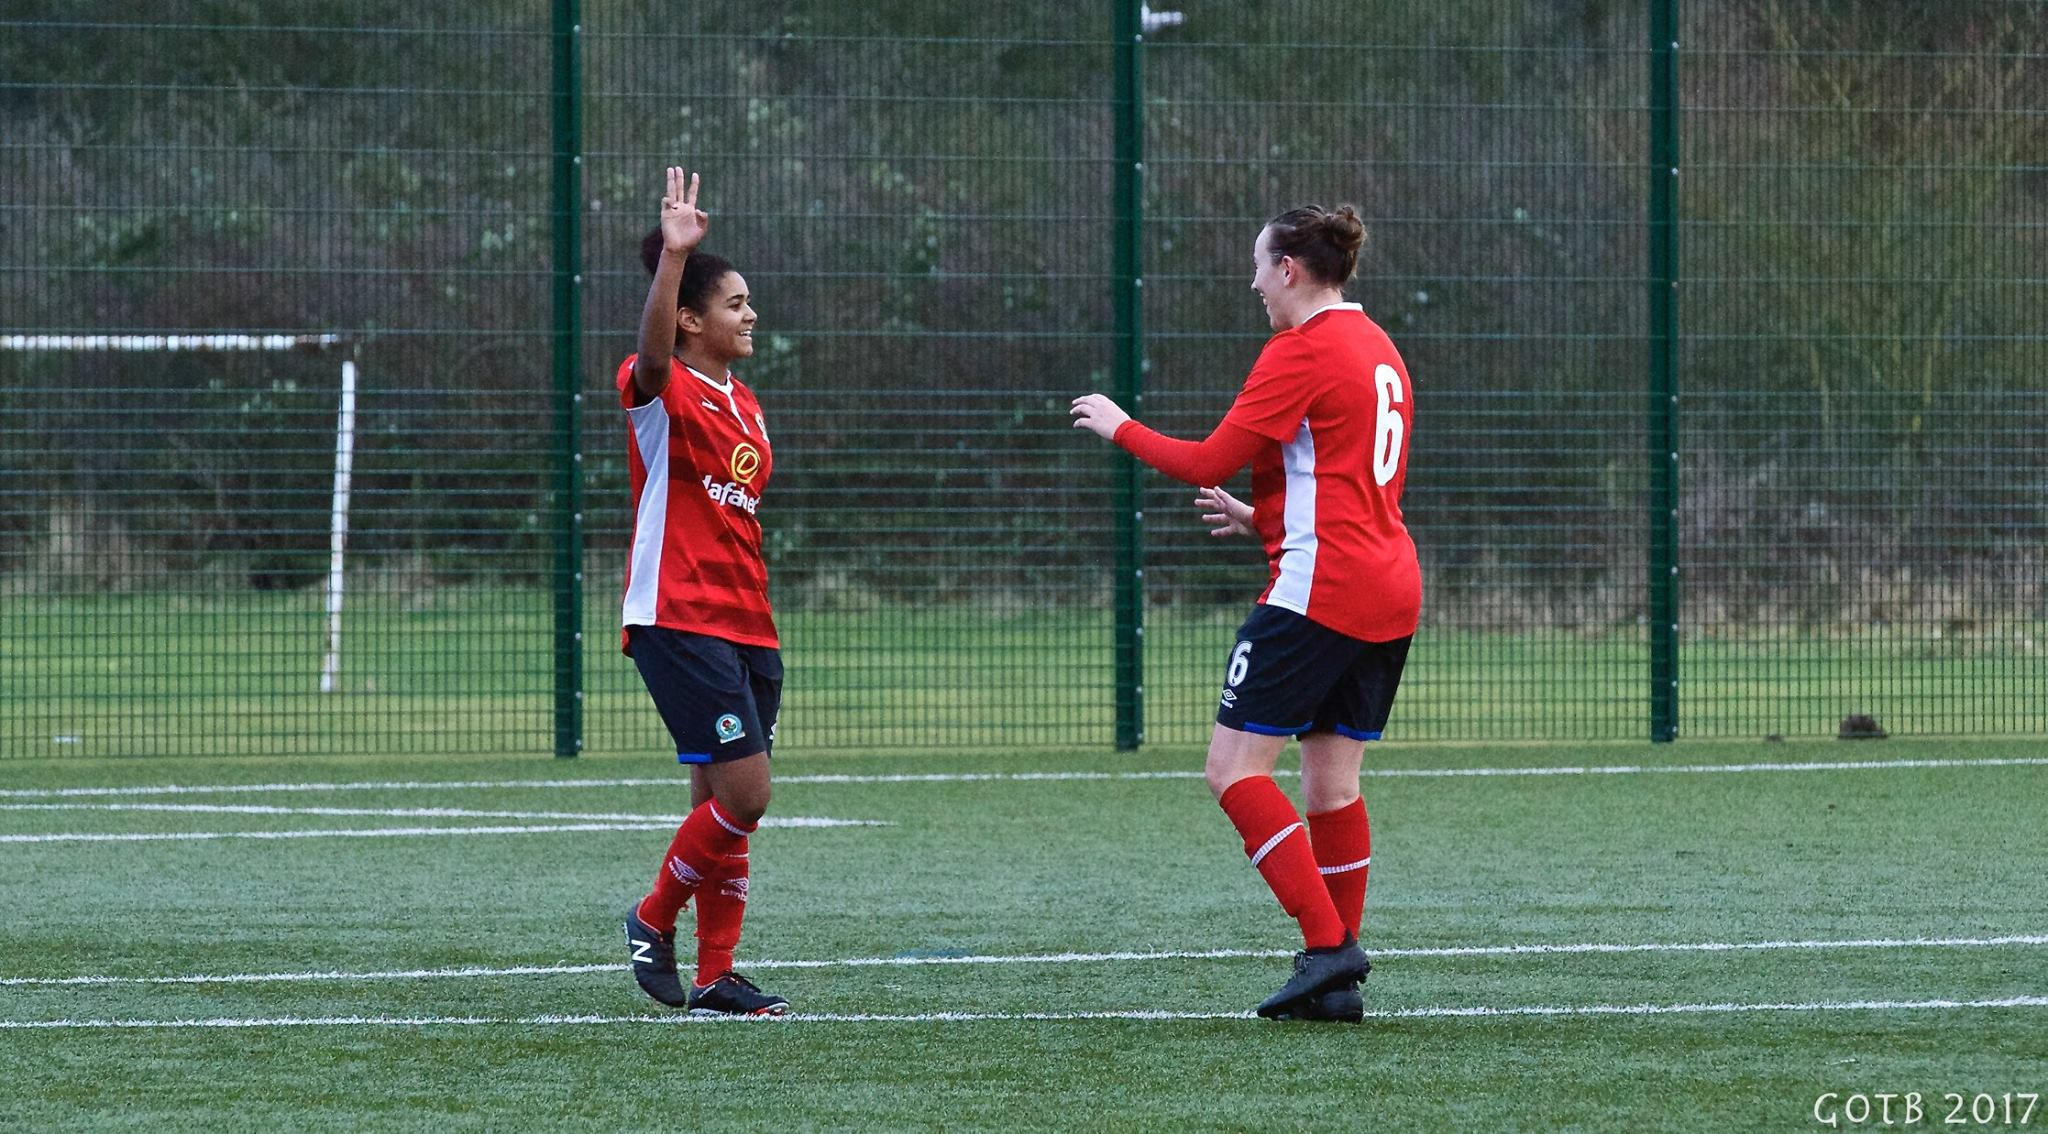 Leicester City v Blackburn Rovers, FAWPL Northern